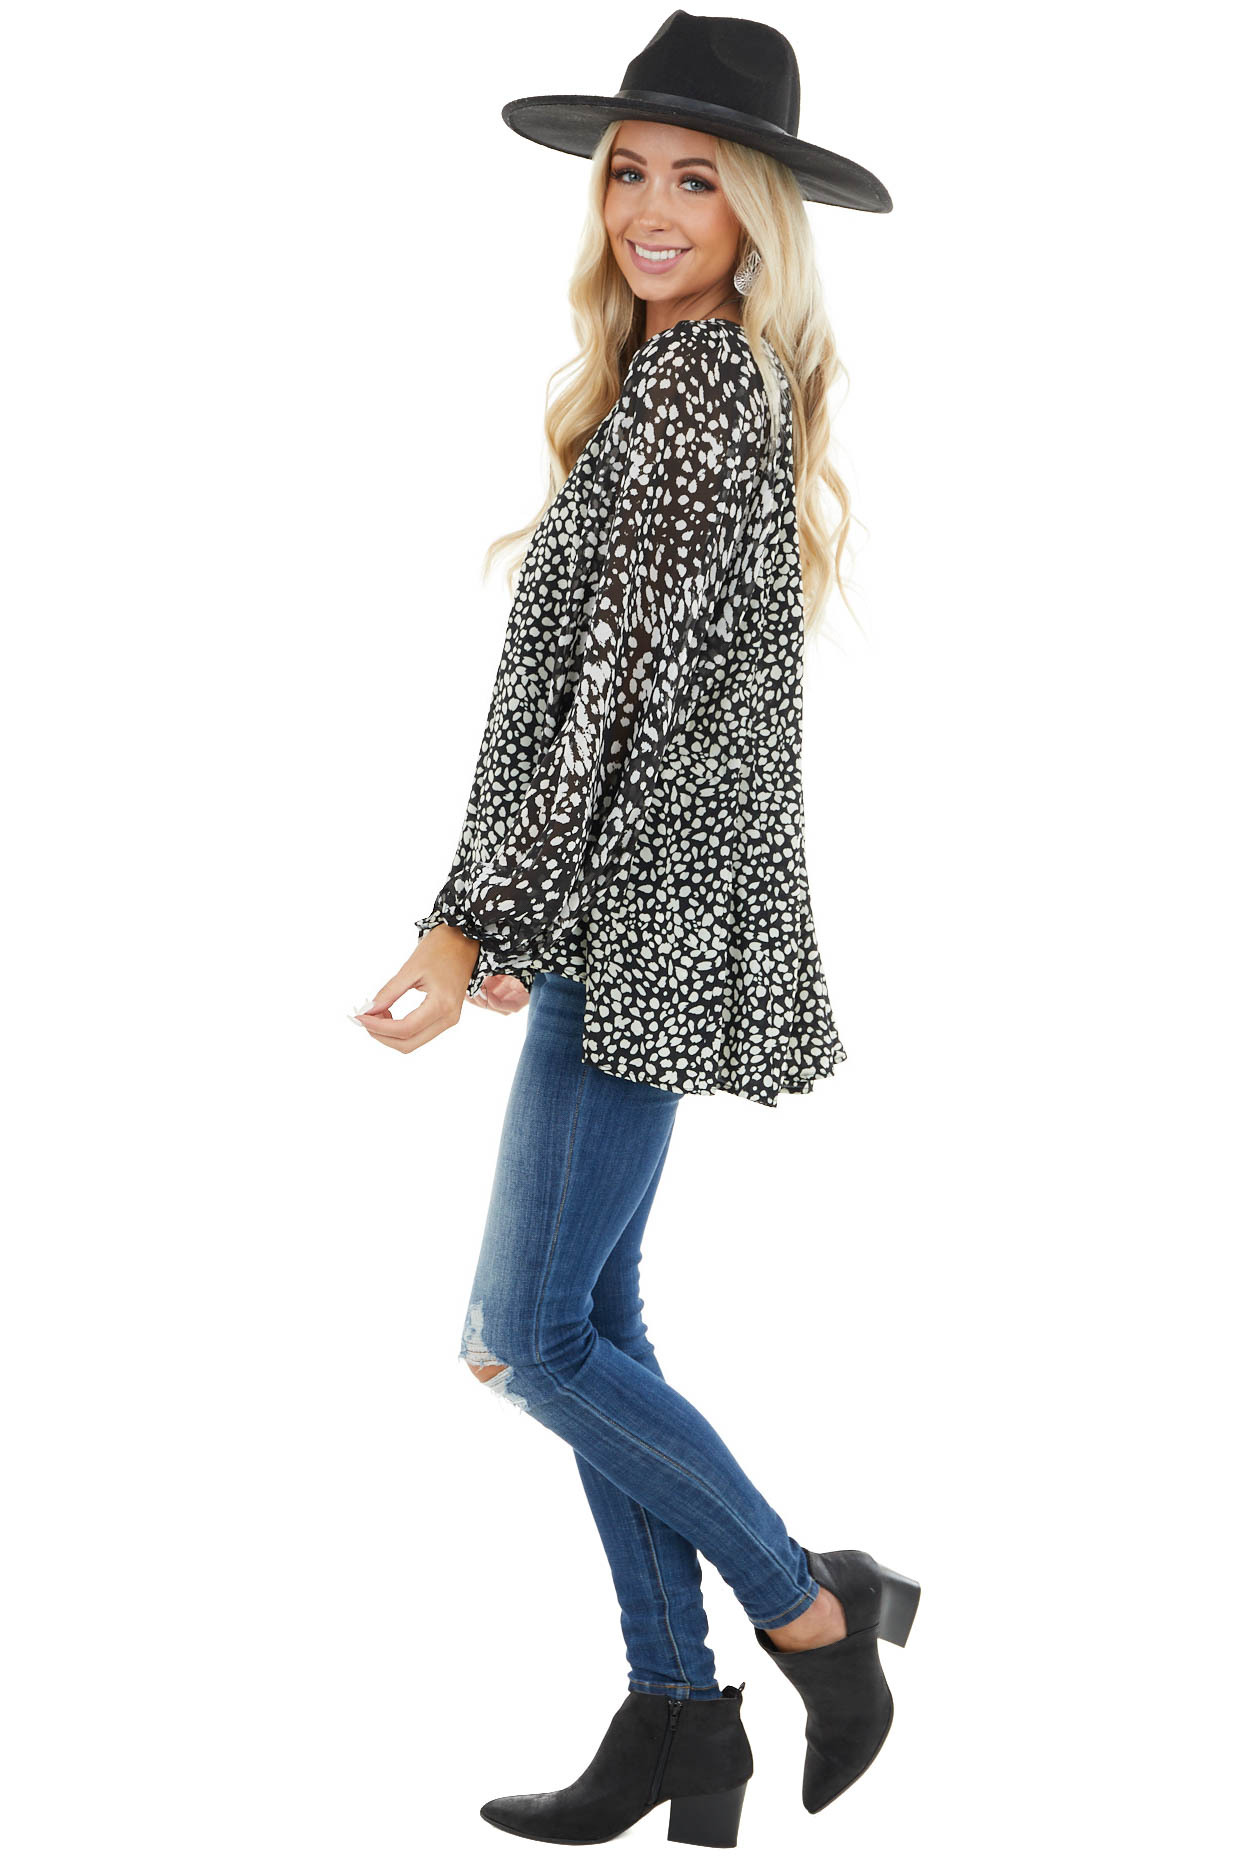 Black Cheetah Print Flowy Top with Bubble Sleeves